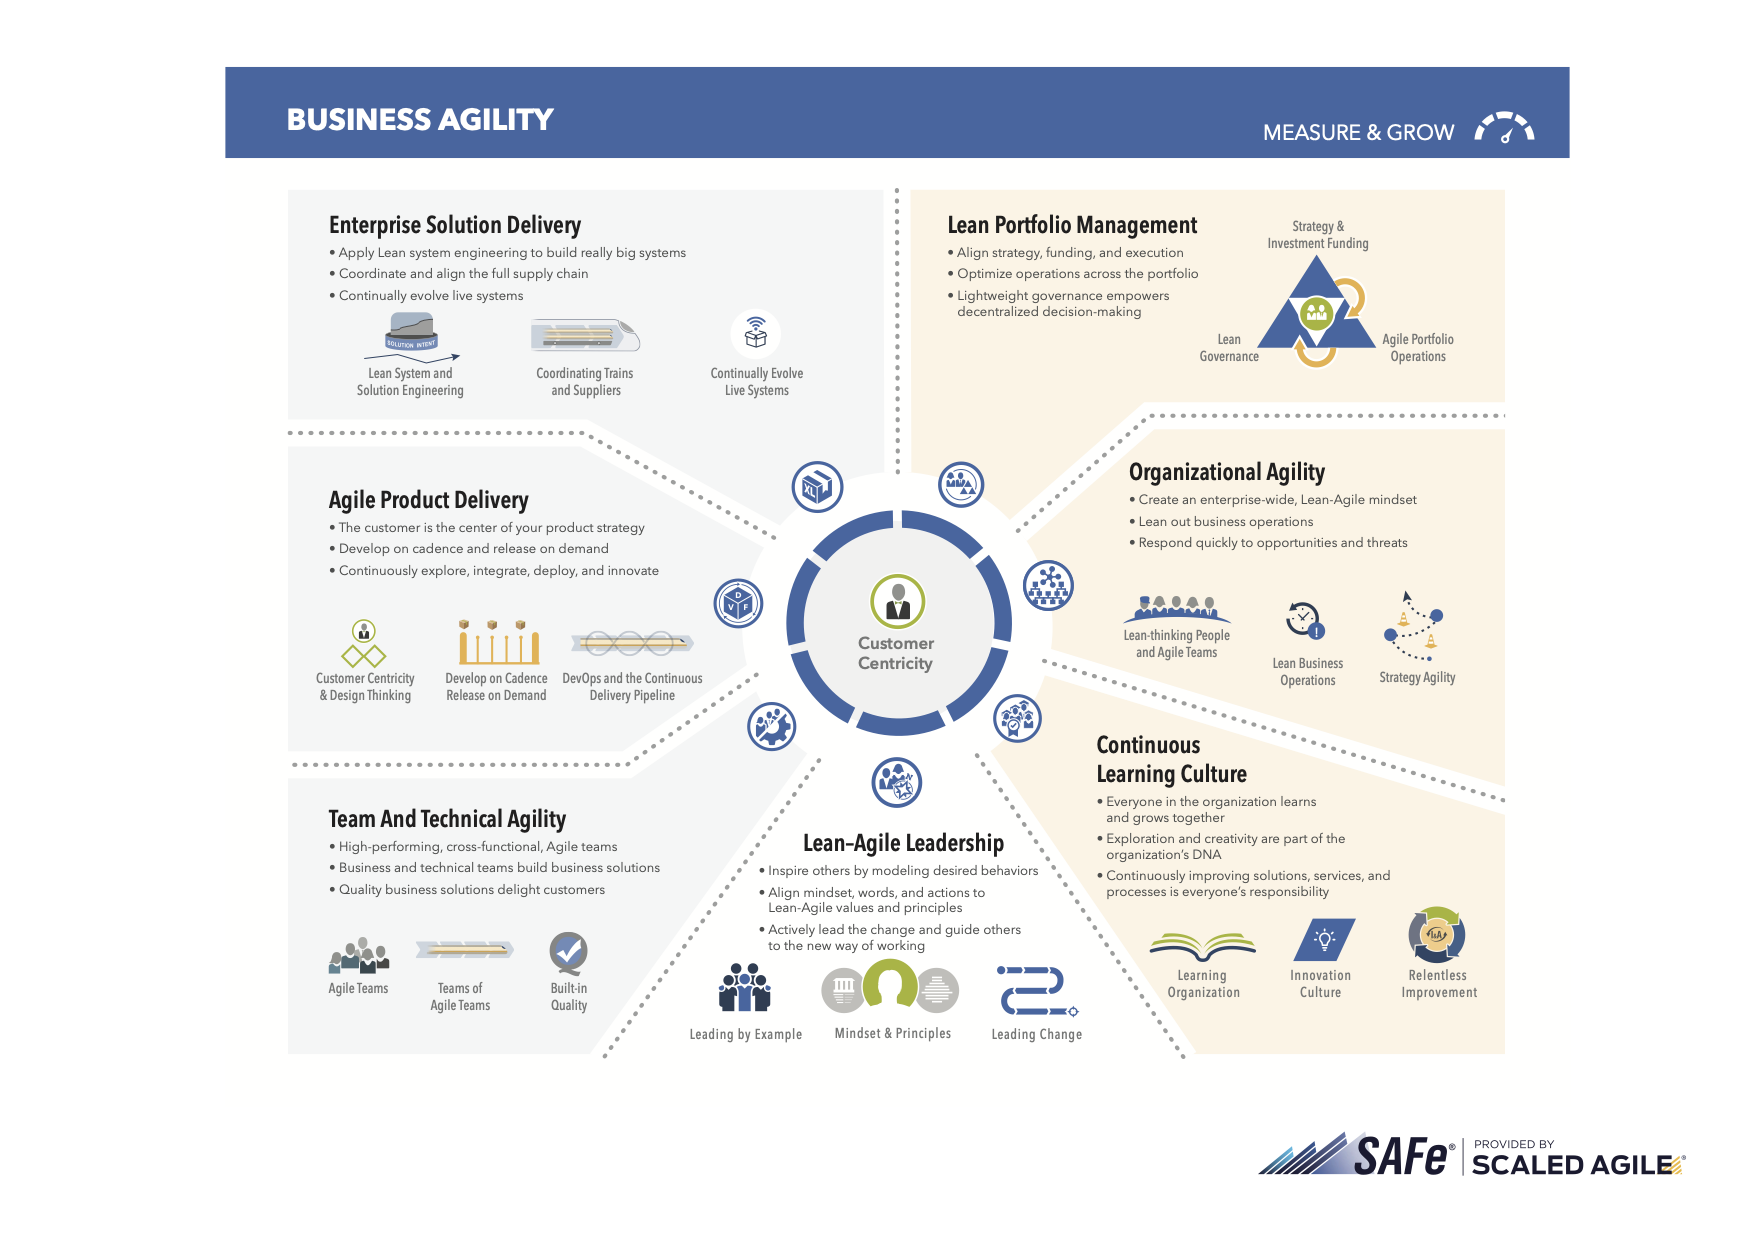 Seven Core Competencies of Business Agility